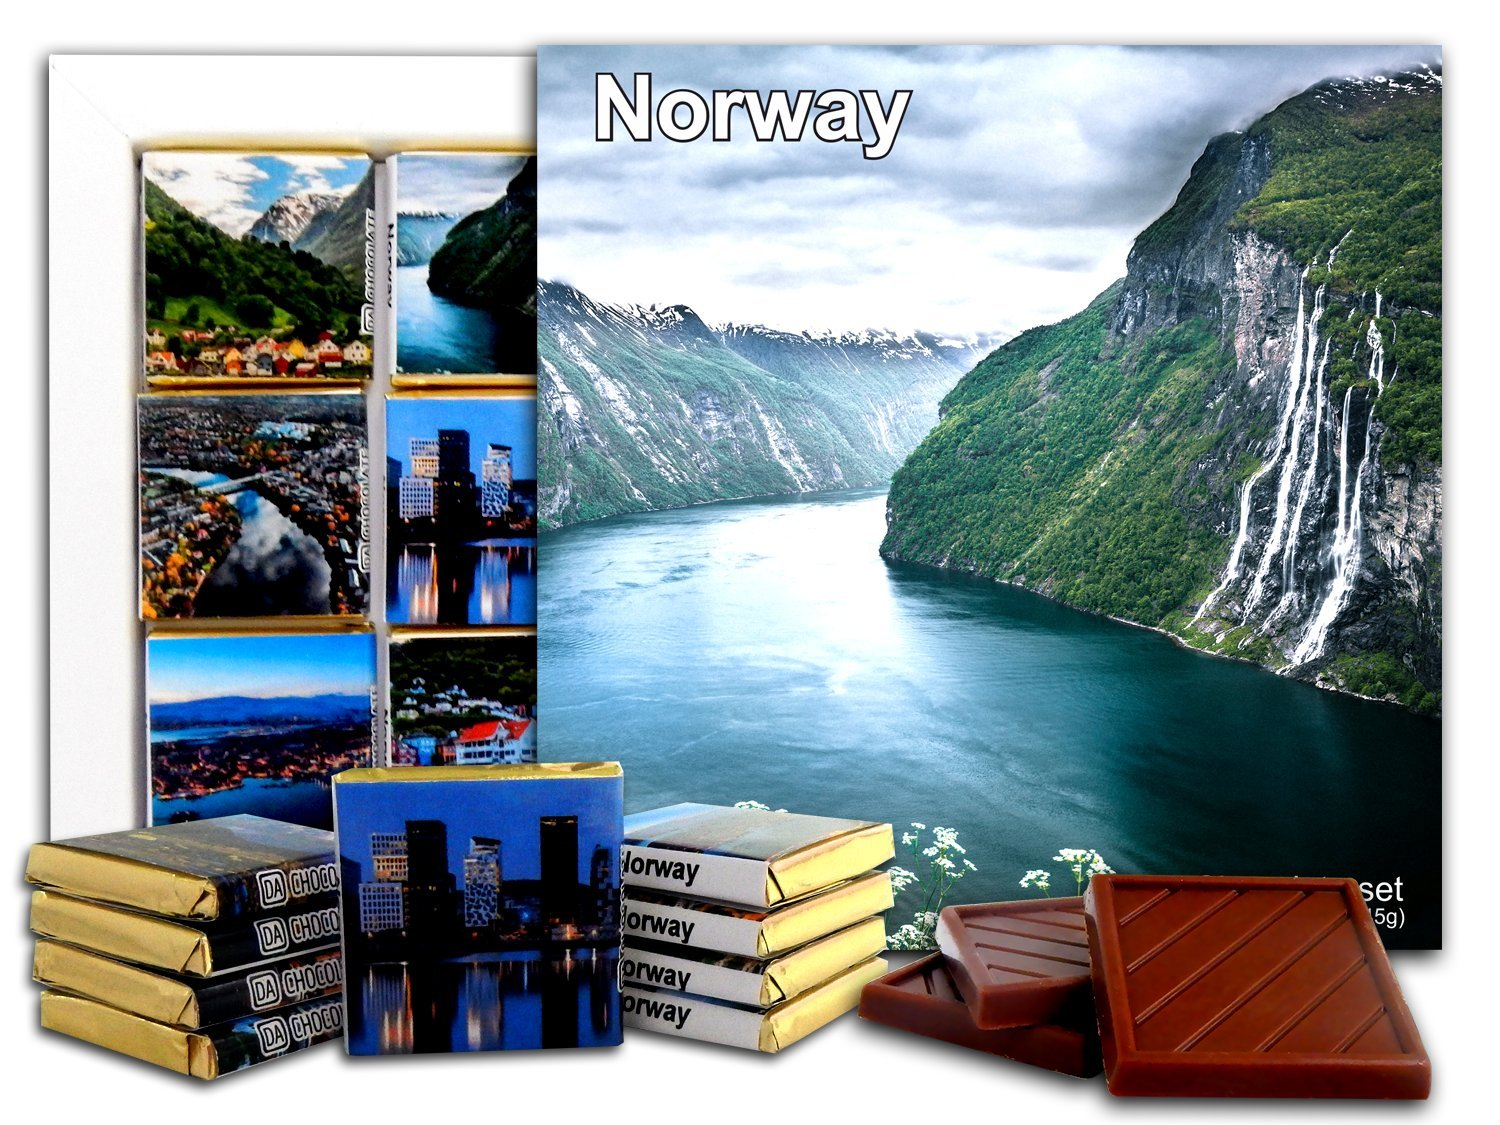 NORWAY Chocolate Gift Set 5x5in 1 box (Day 2256)